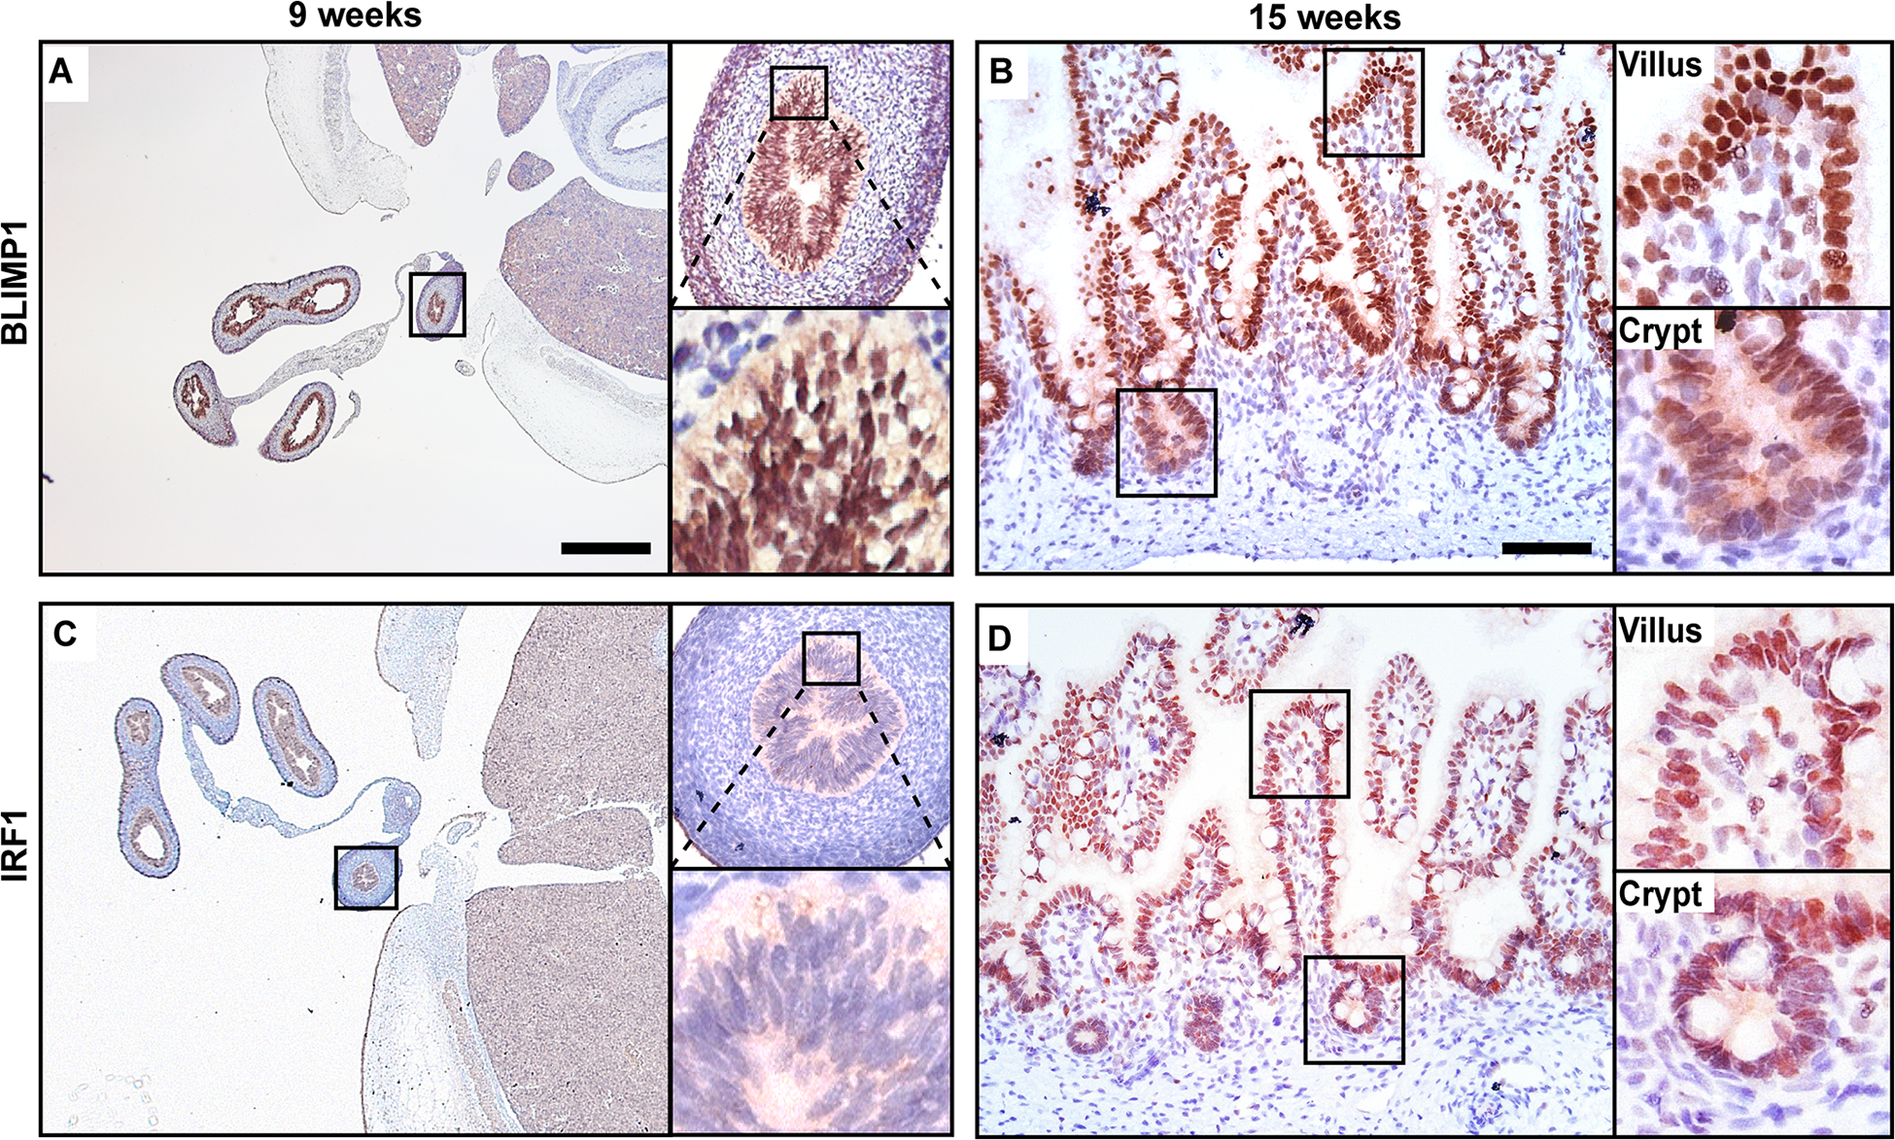 BLIMP1 and IRF1 are co-expressed in fetal human intestine.